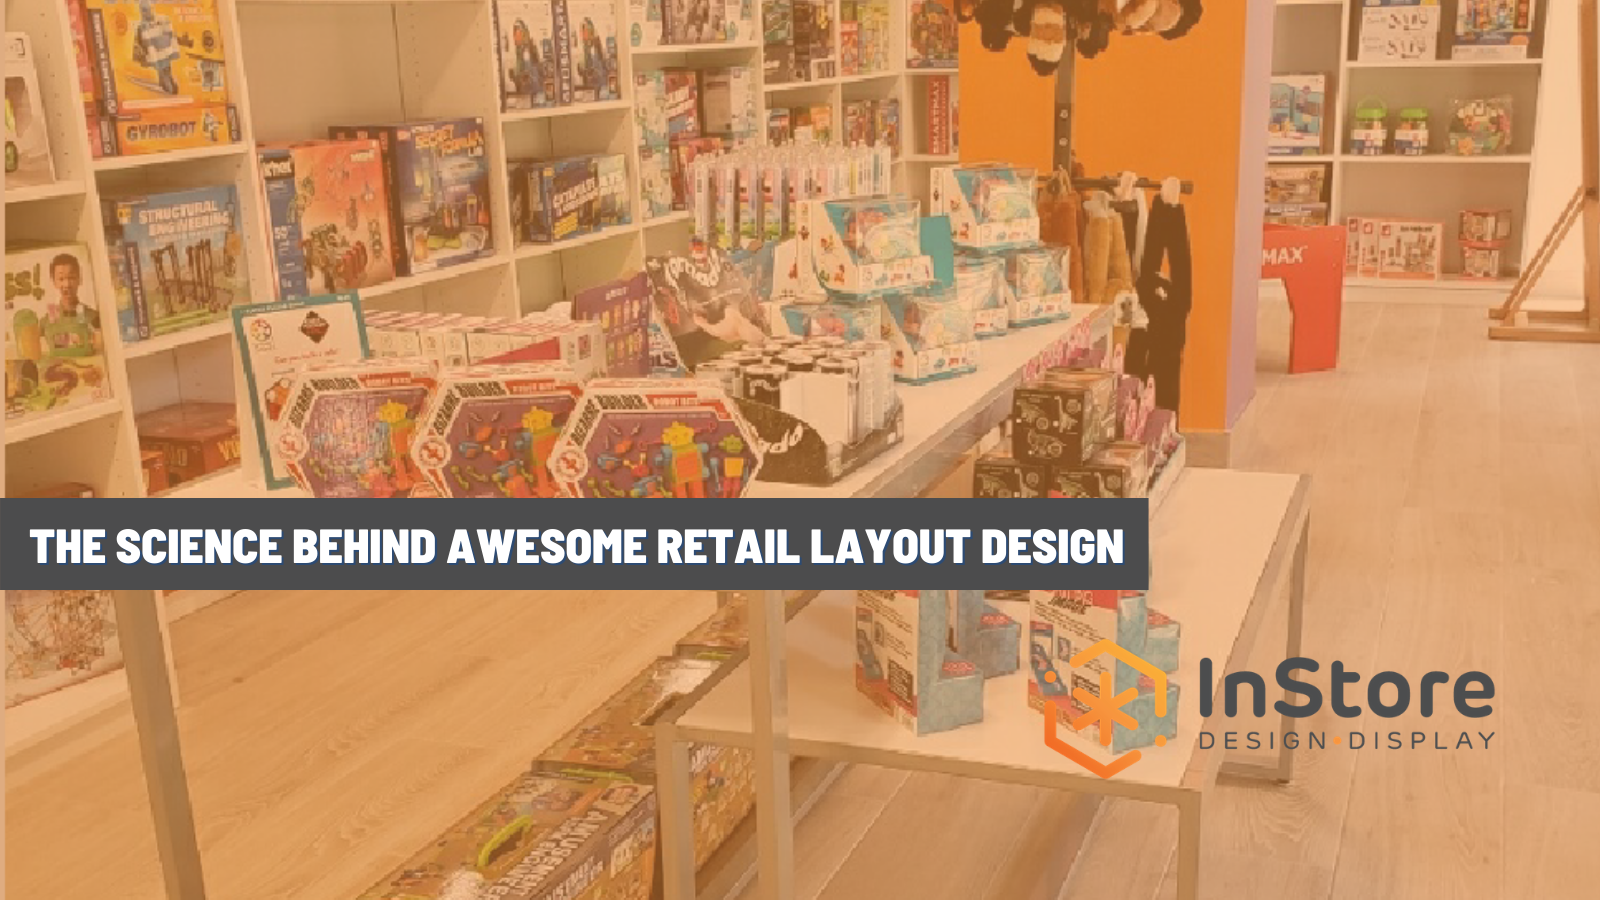 The Science Behind Awesome Retail Layout Design